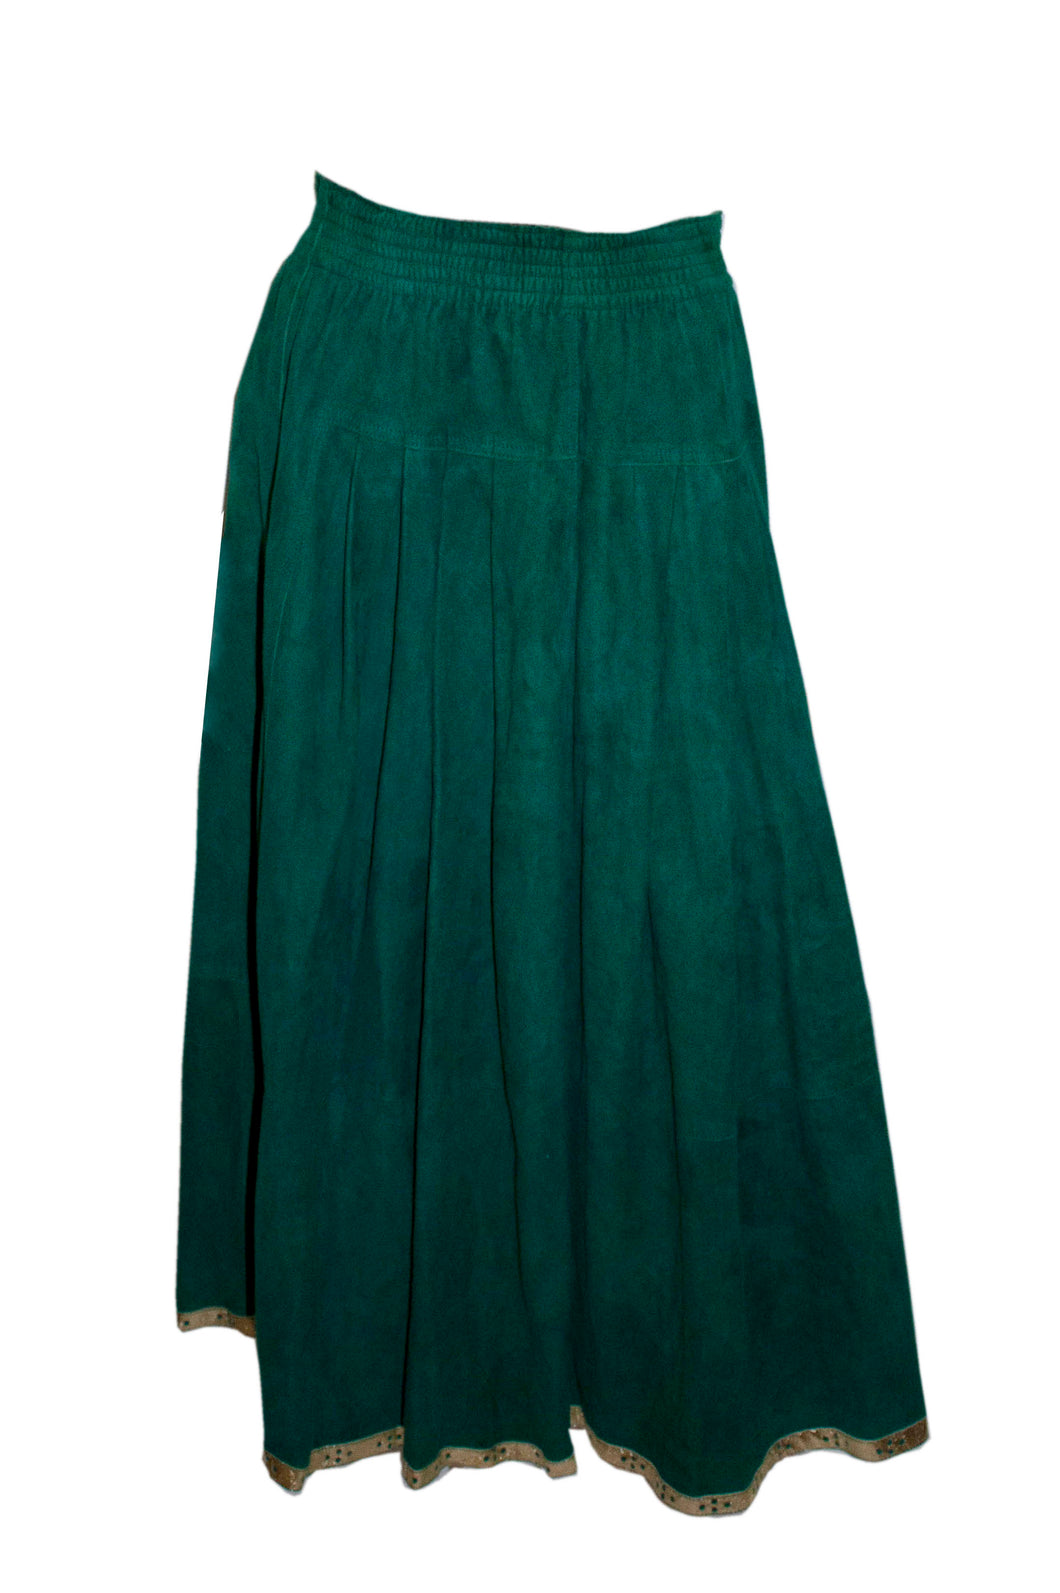 Vintage Jean Muir Green Suede Skirt with Gold Trim